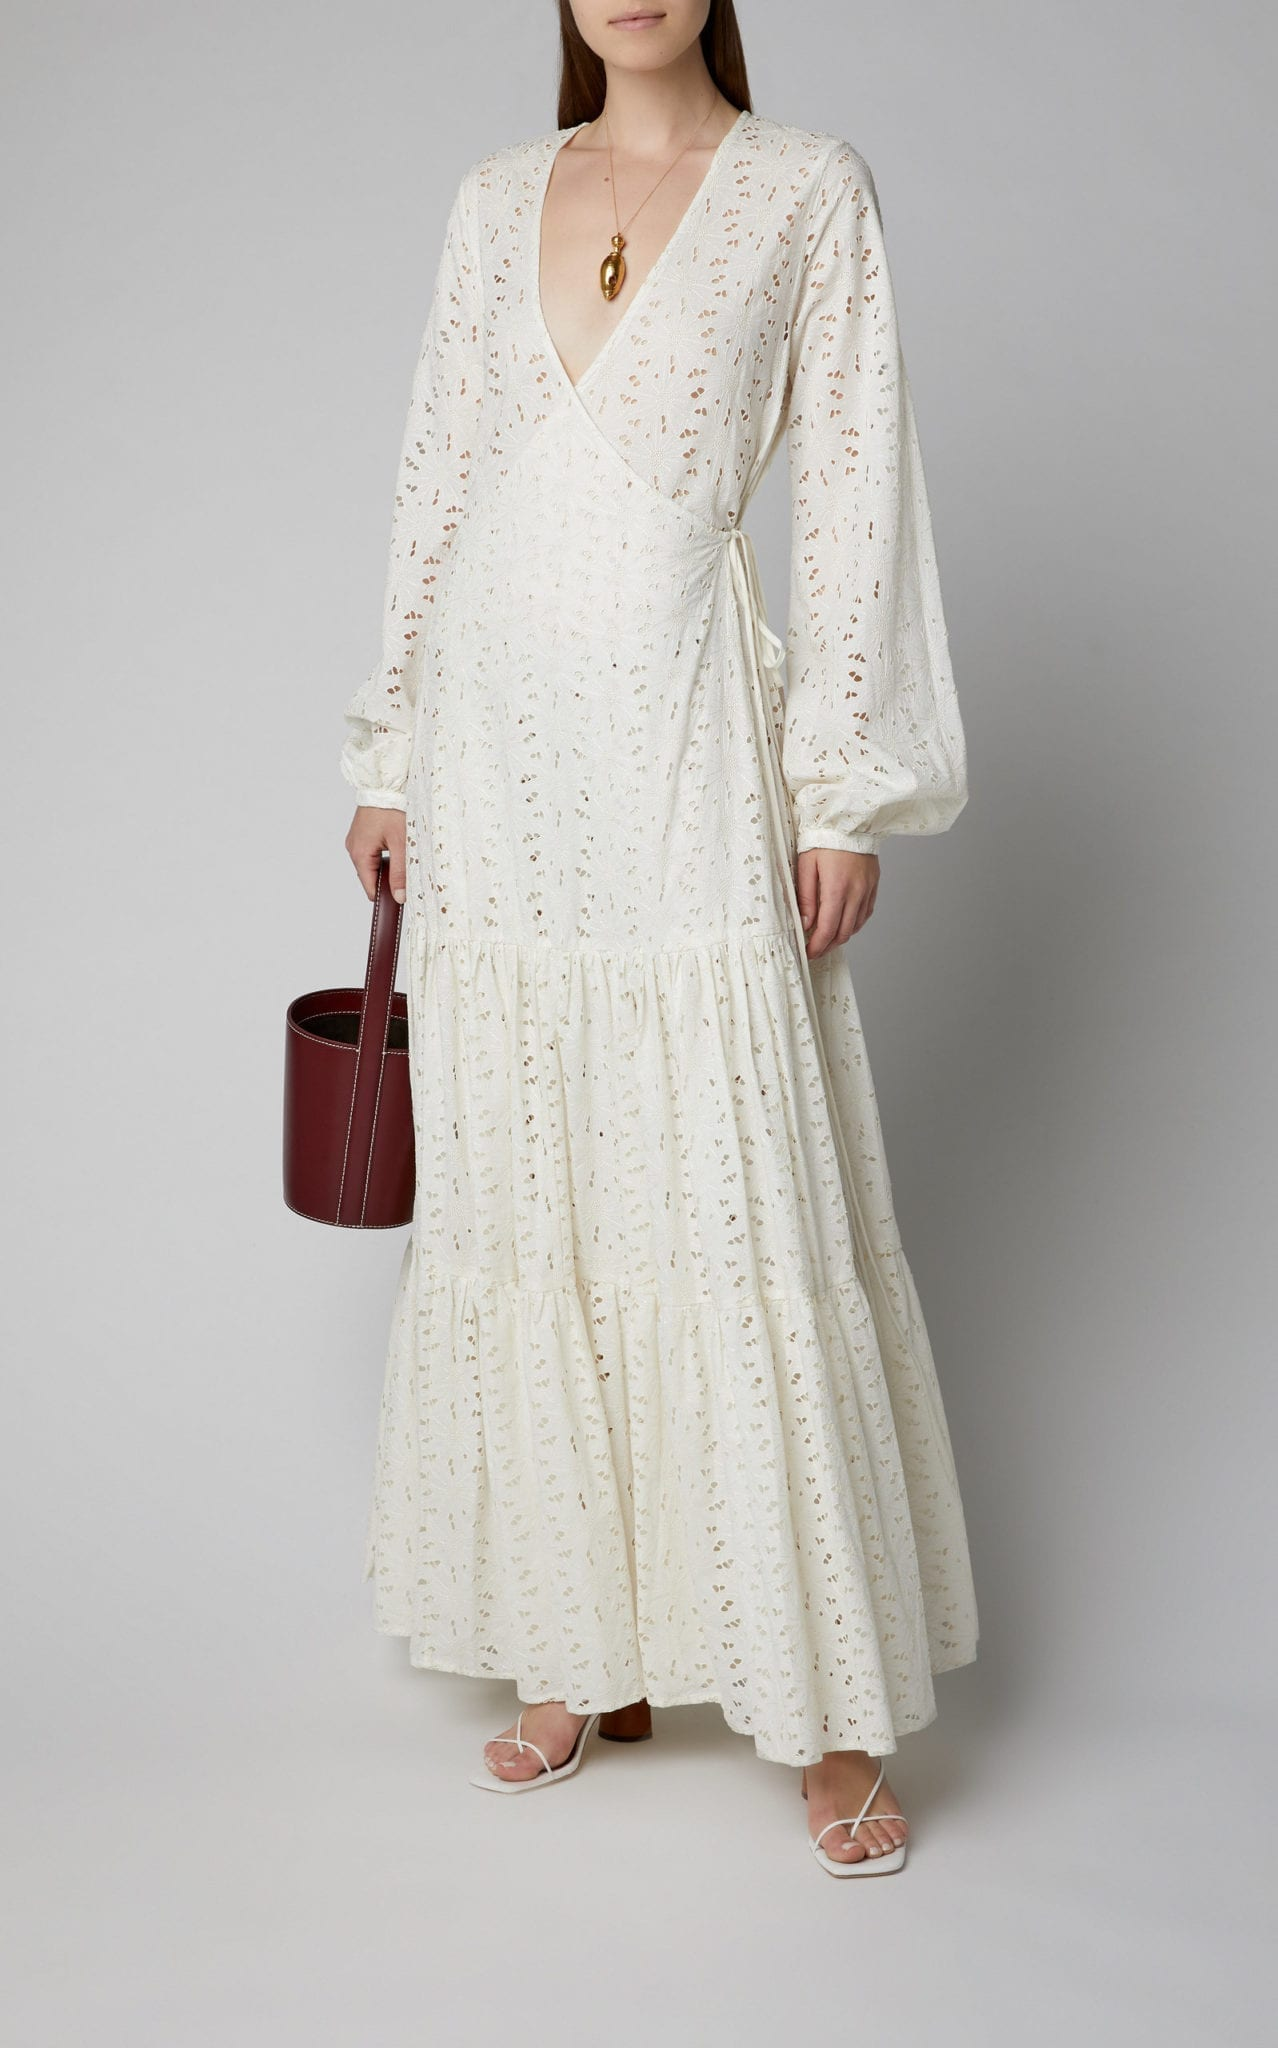 MATIN Floral Broderie Anglaise Cotton Maxi Dress